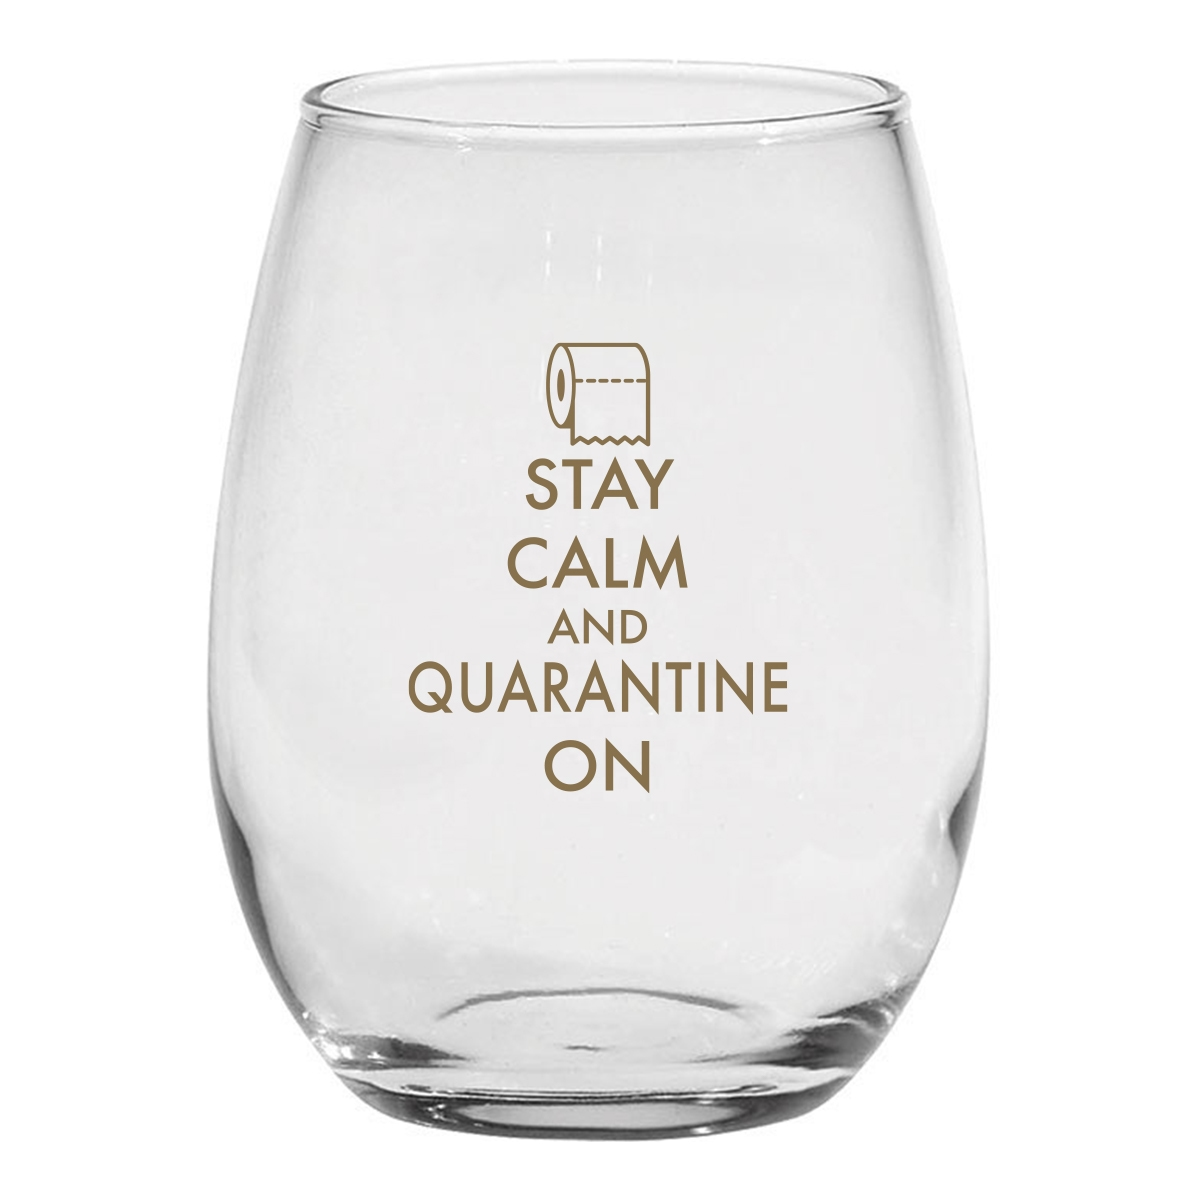 Glass stemless wine glass with quarantine quote